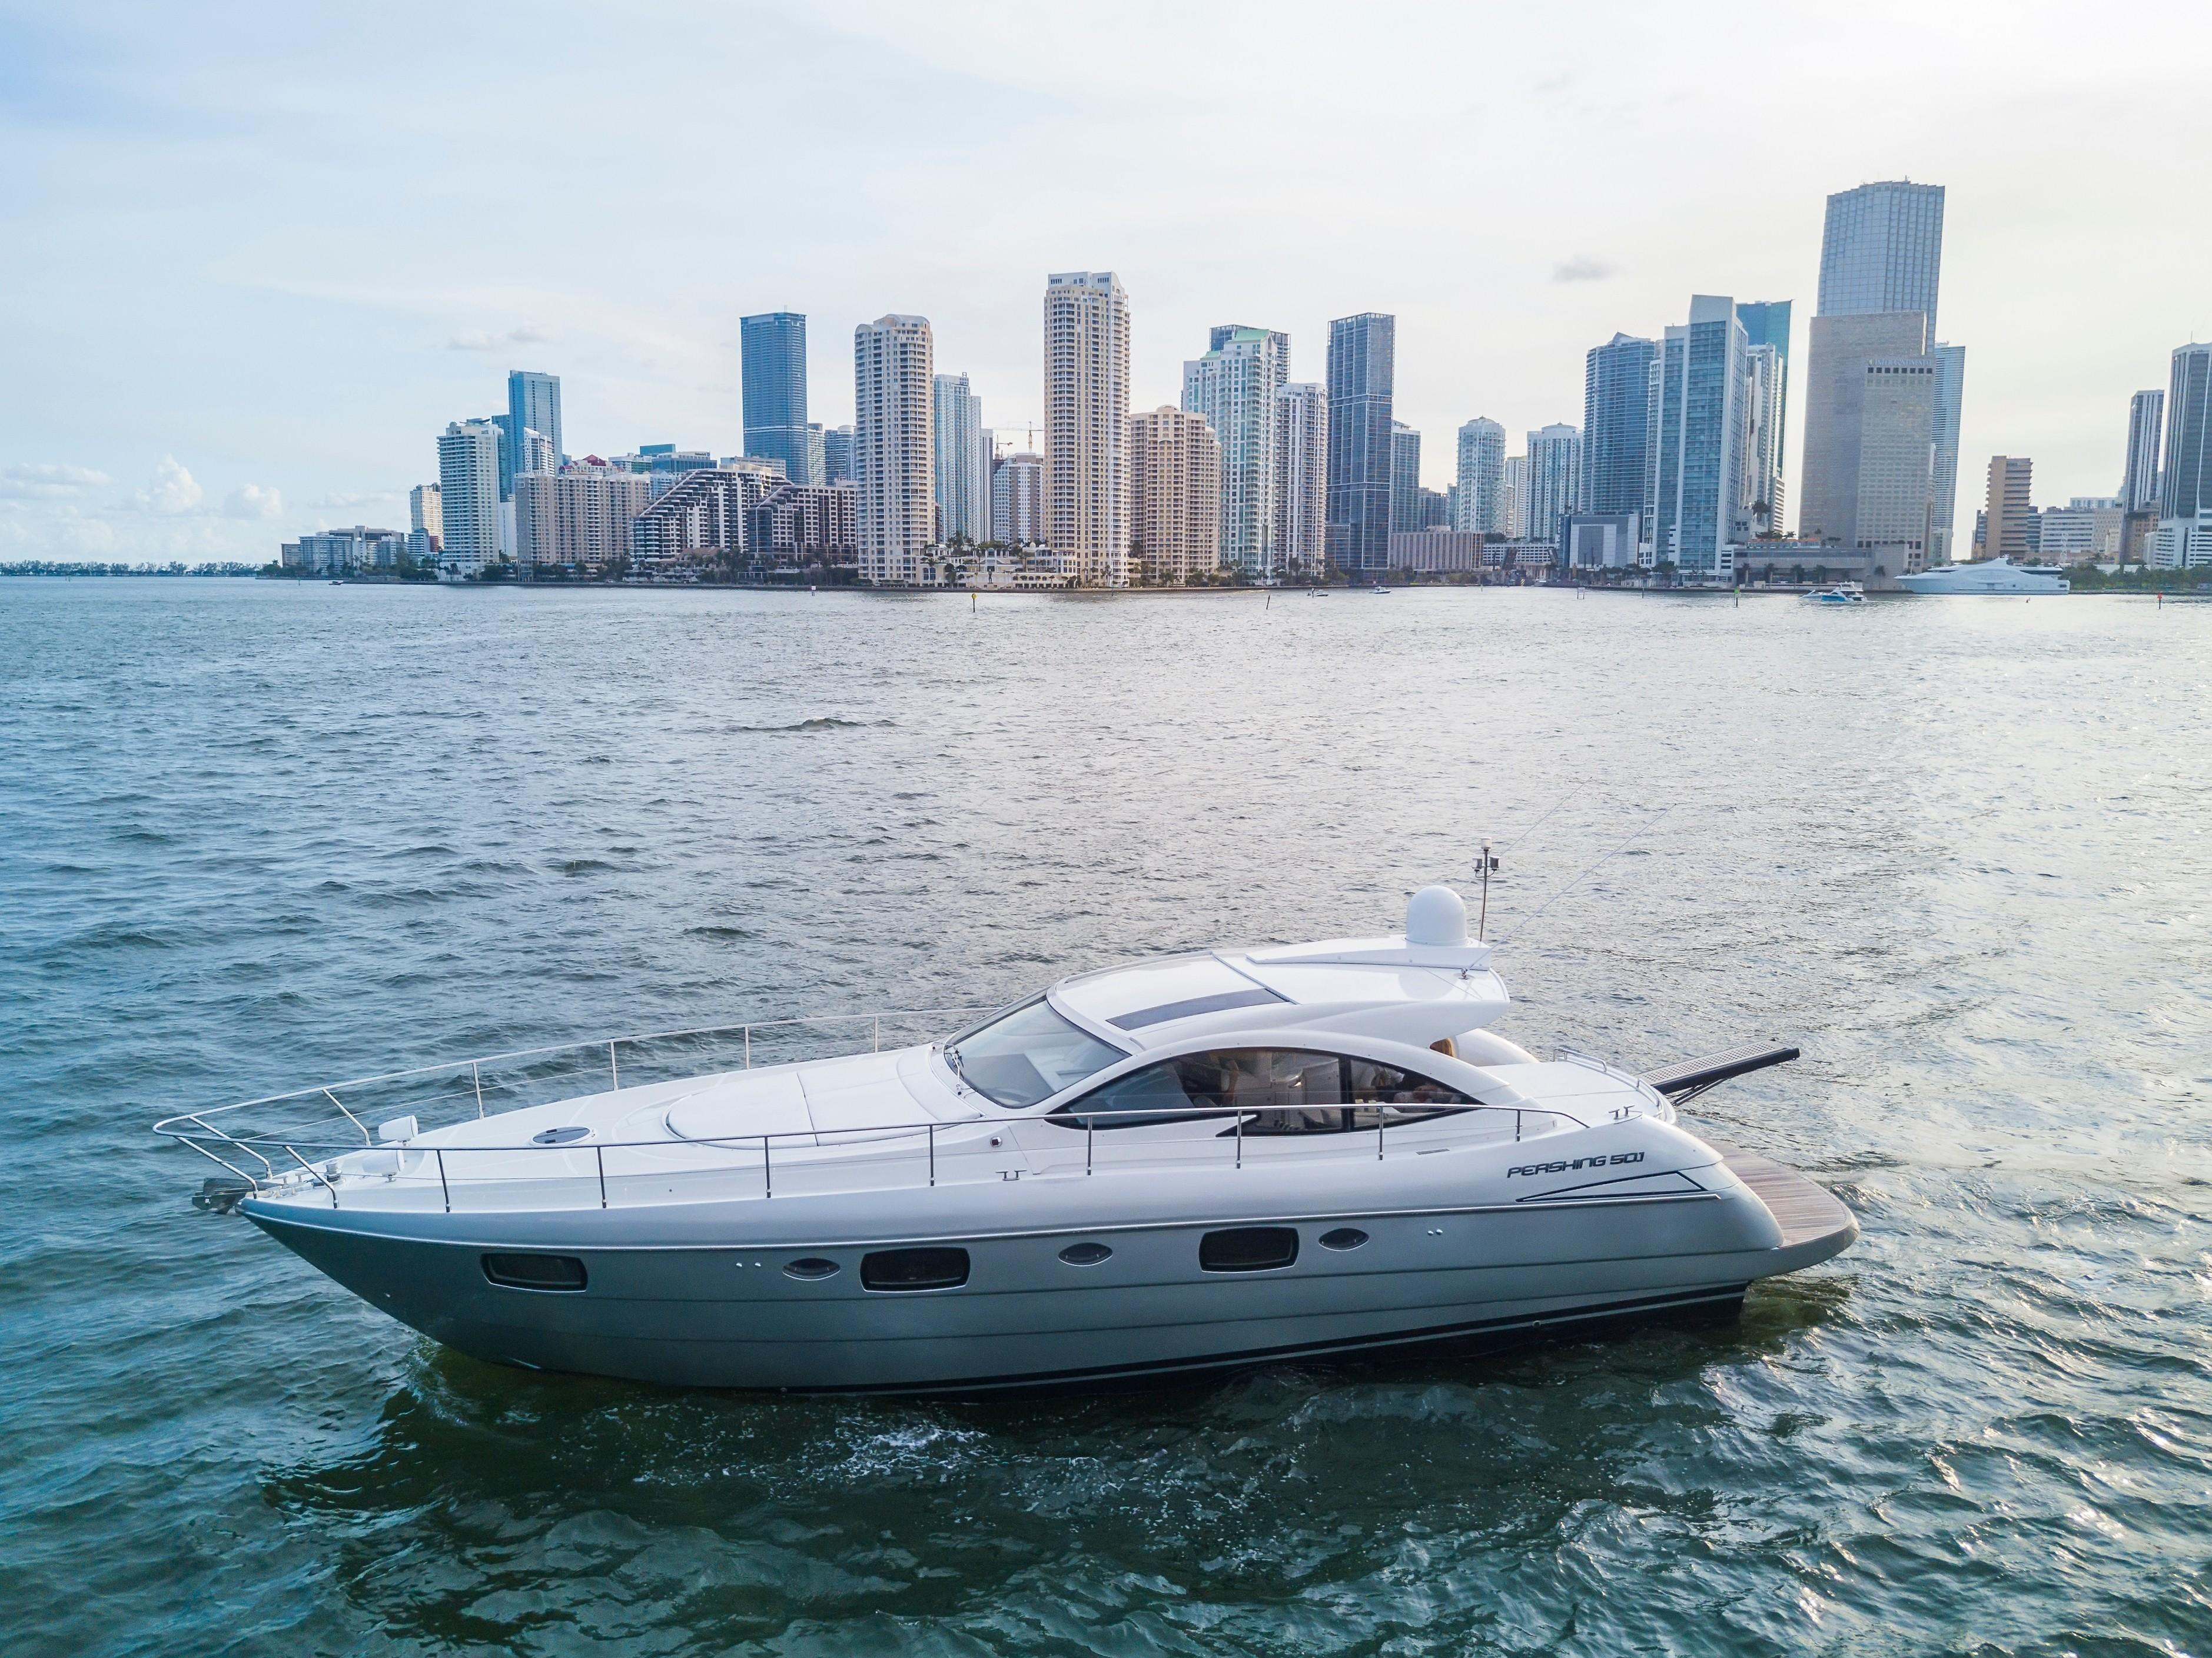 50' Pershing 2013 - Profile